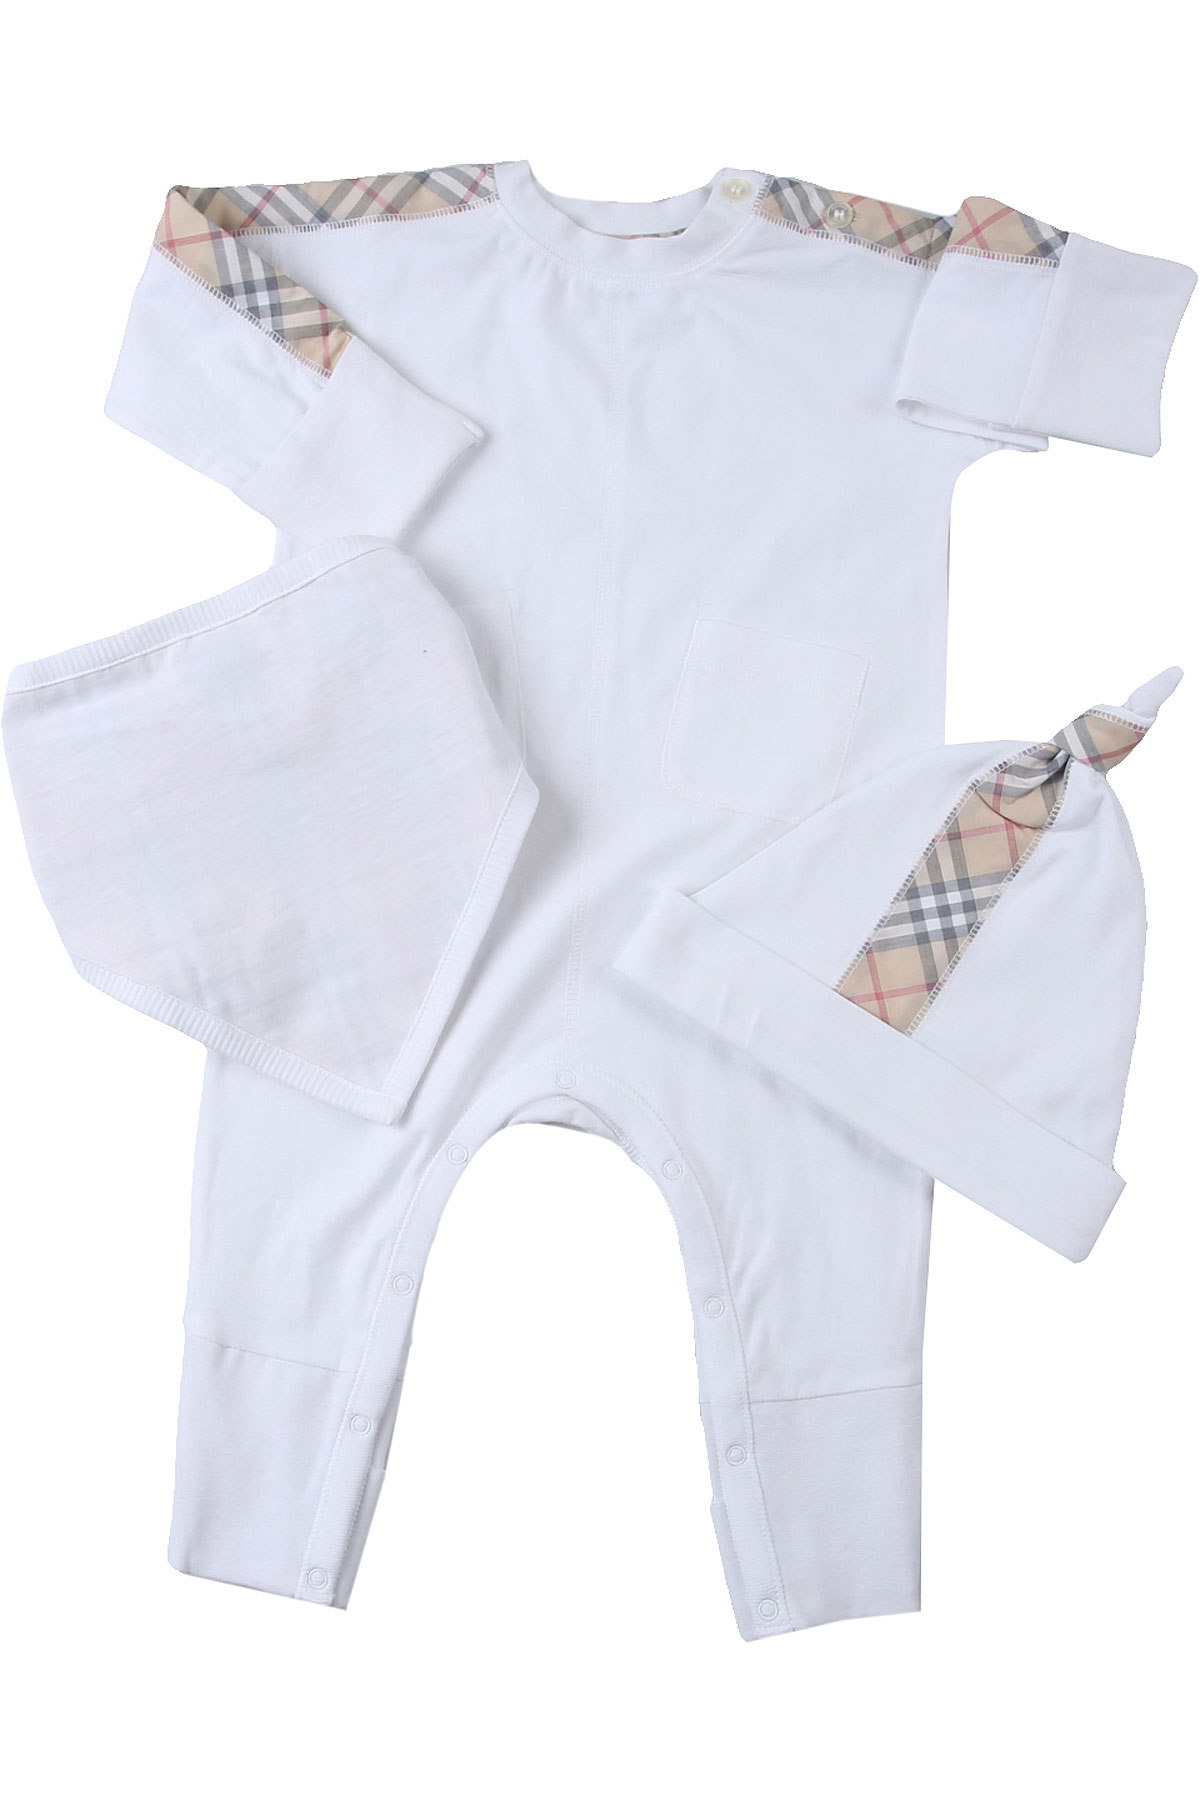 Burberry Baby Bodysuits & Onesies for Girls On Sale, White, Cotton, 2019, 1M 6M